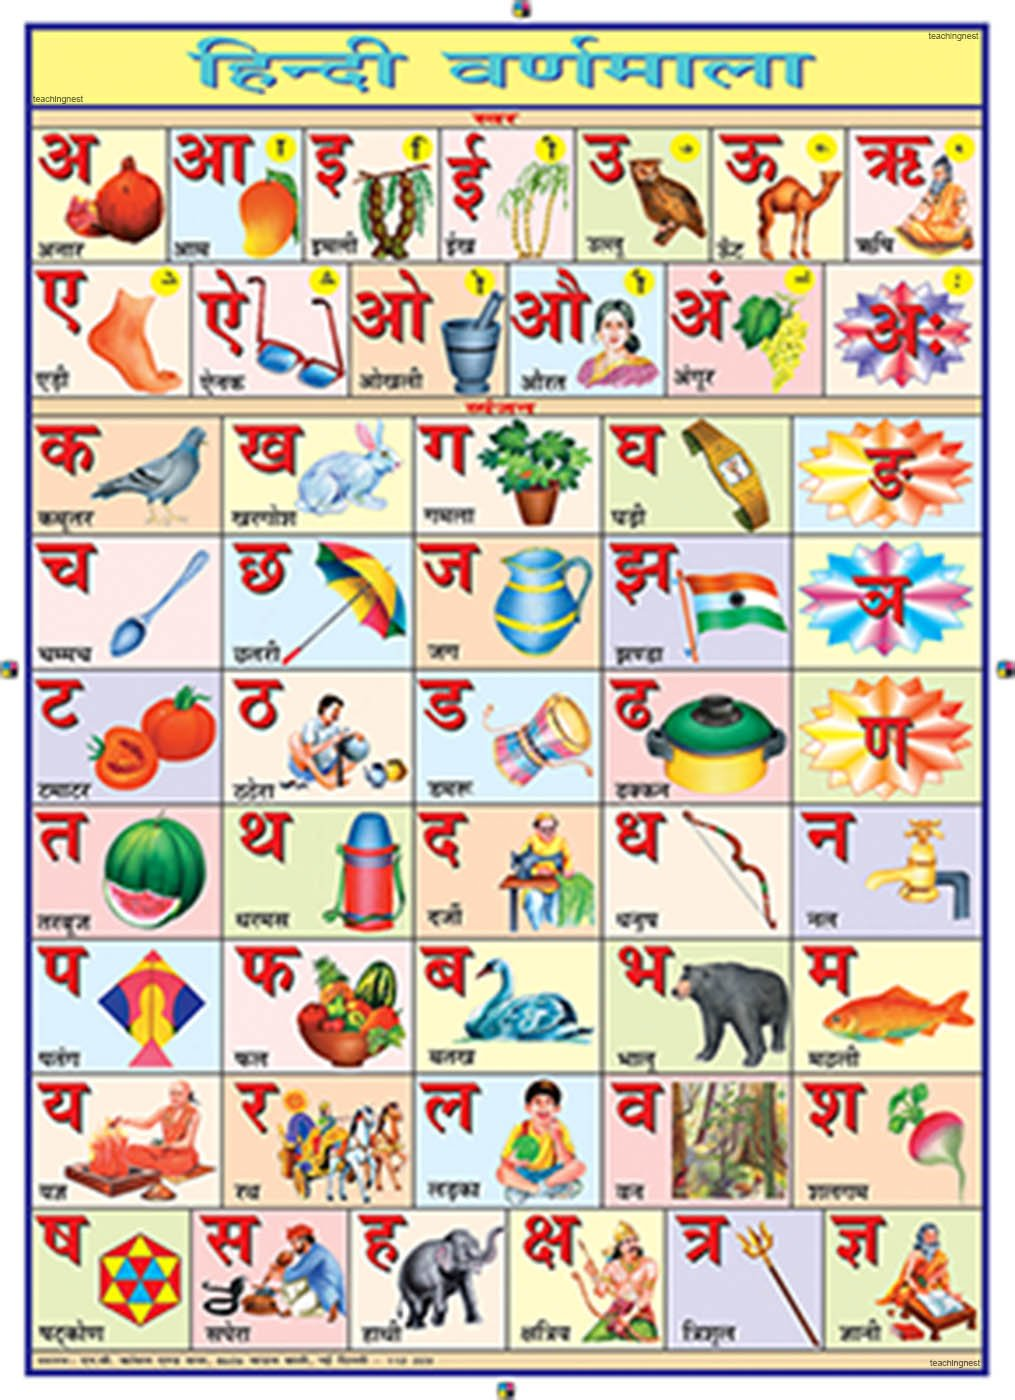 Image Gallery hindi alphabetabet